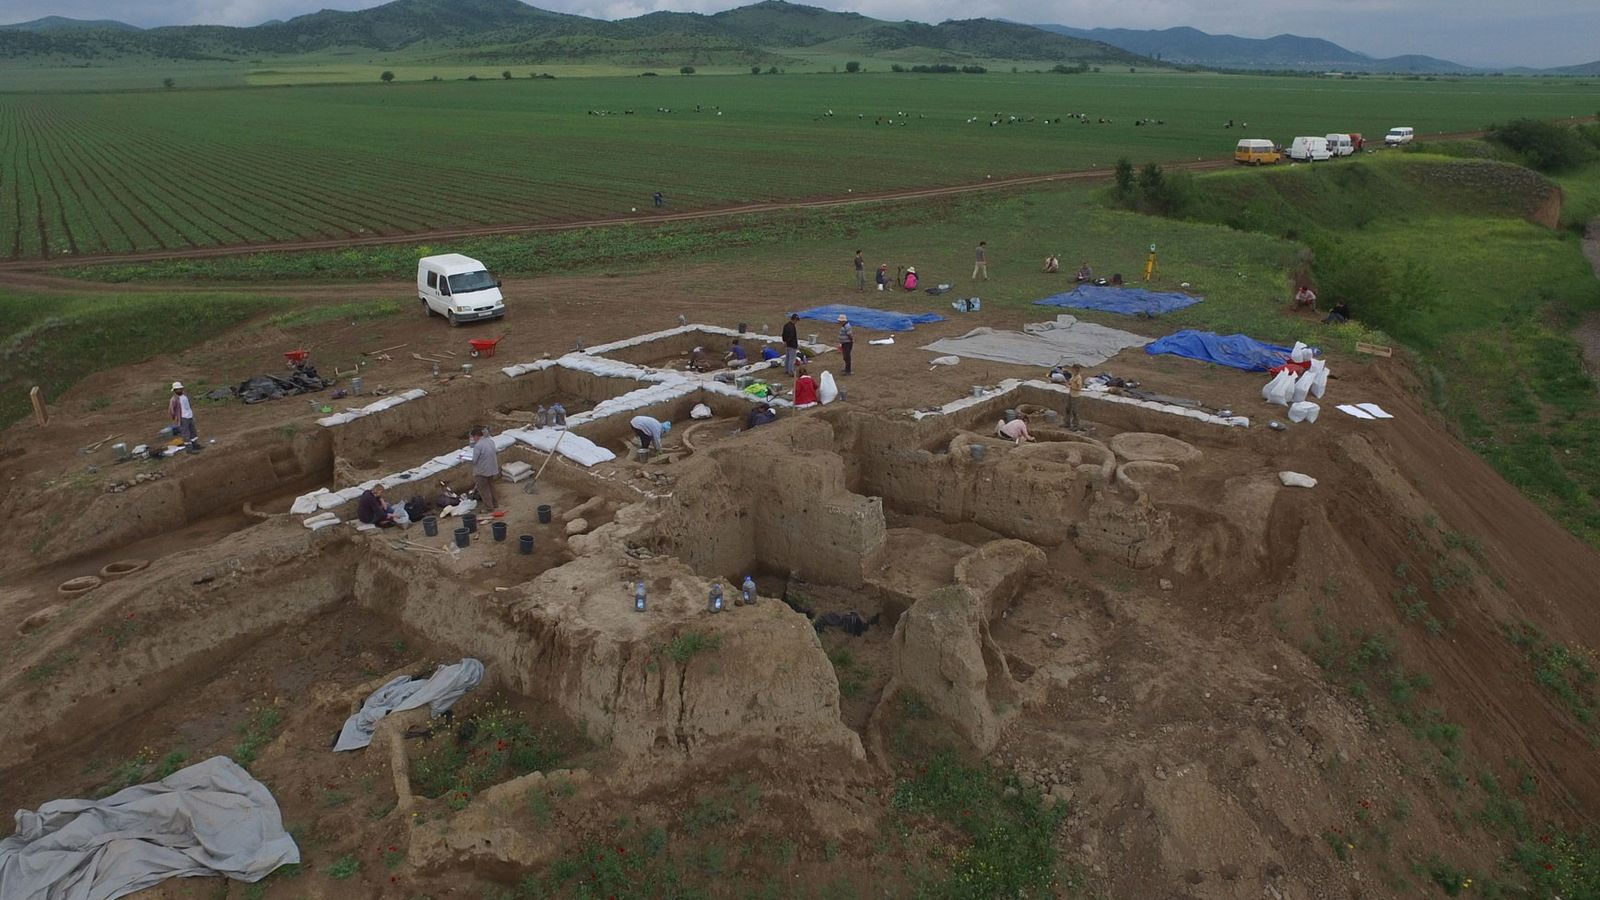 Archaeologists excavating this Neolithic village in the nation of Georgia found pieces of clay pots containing ...